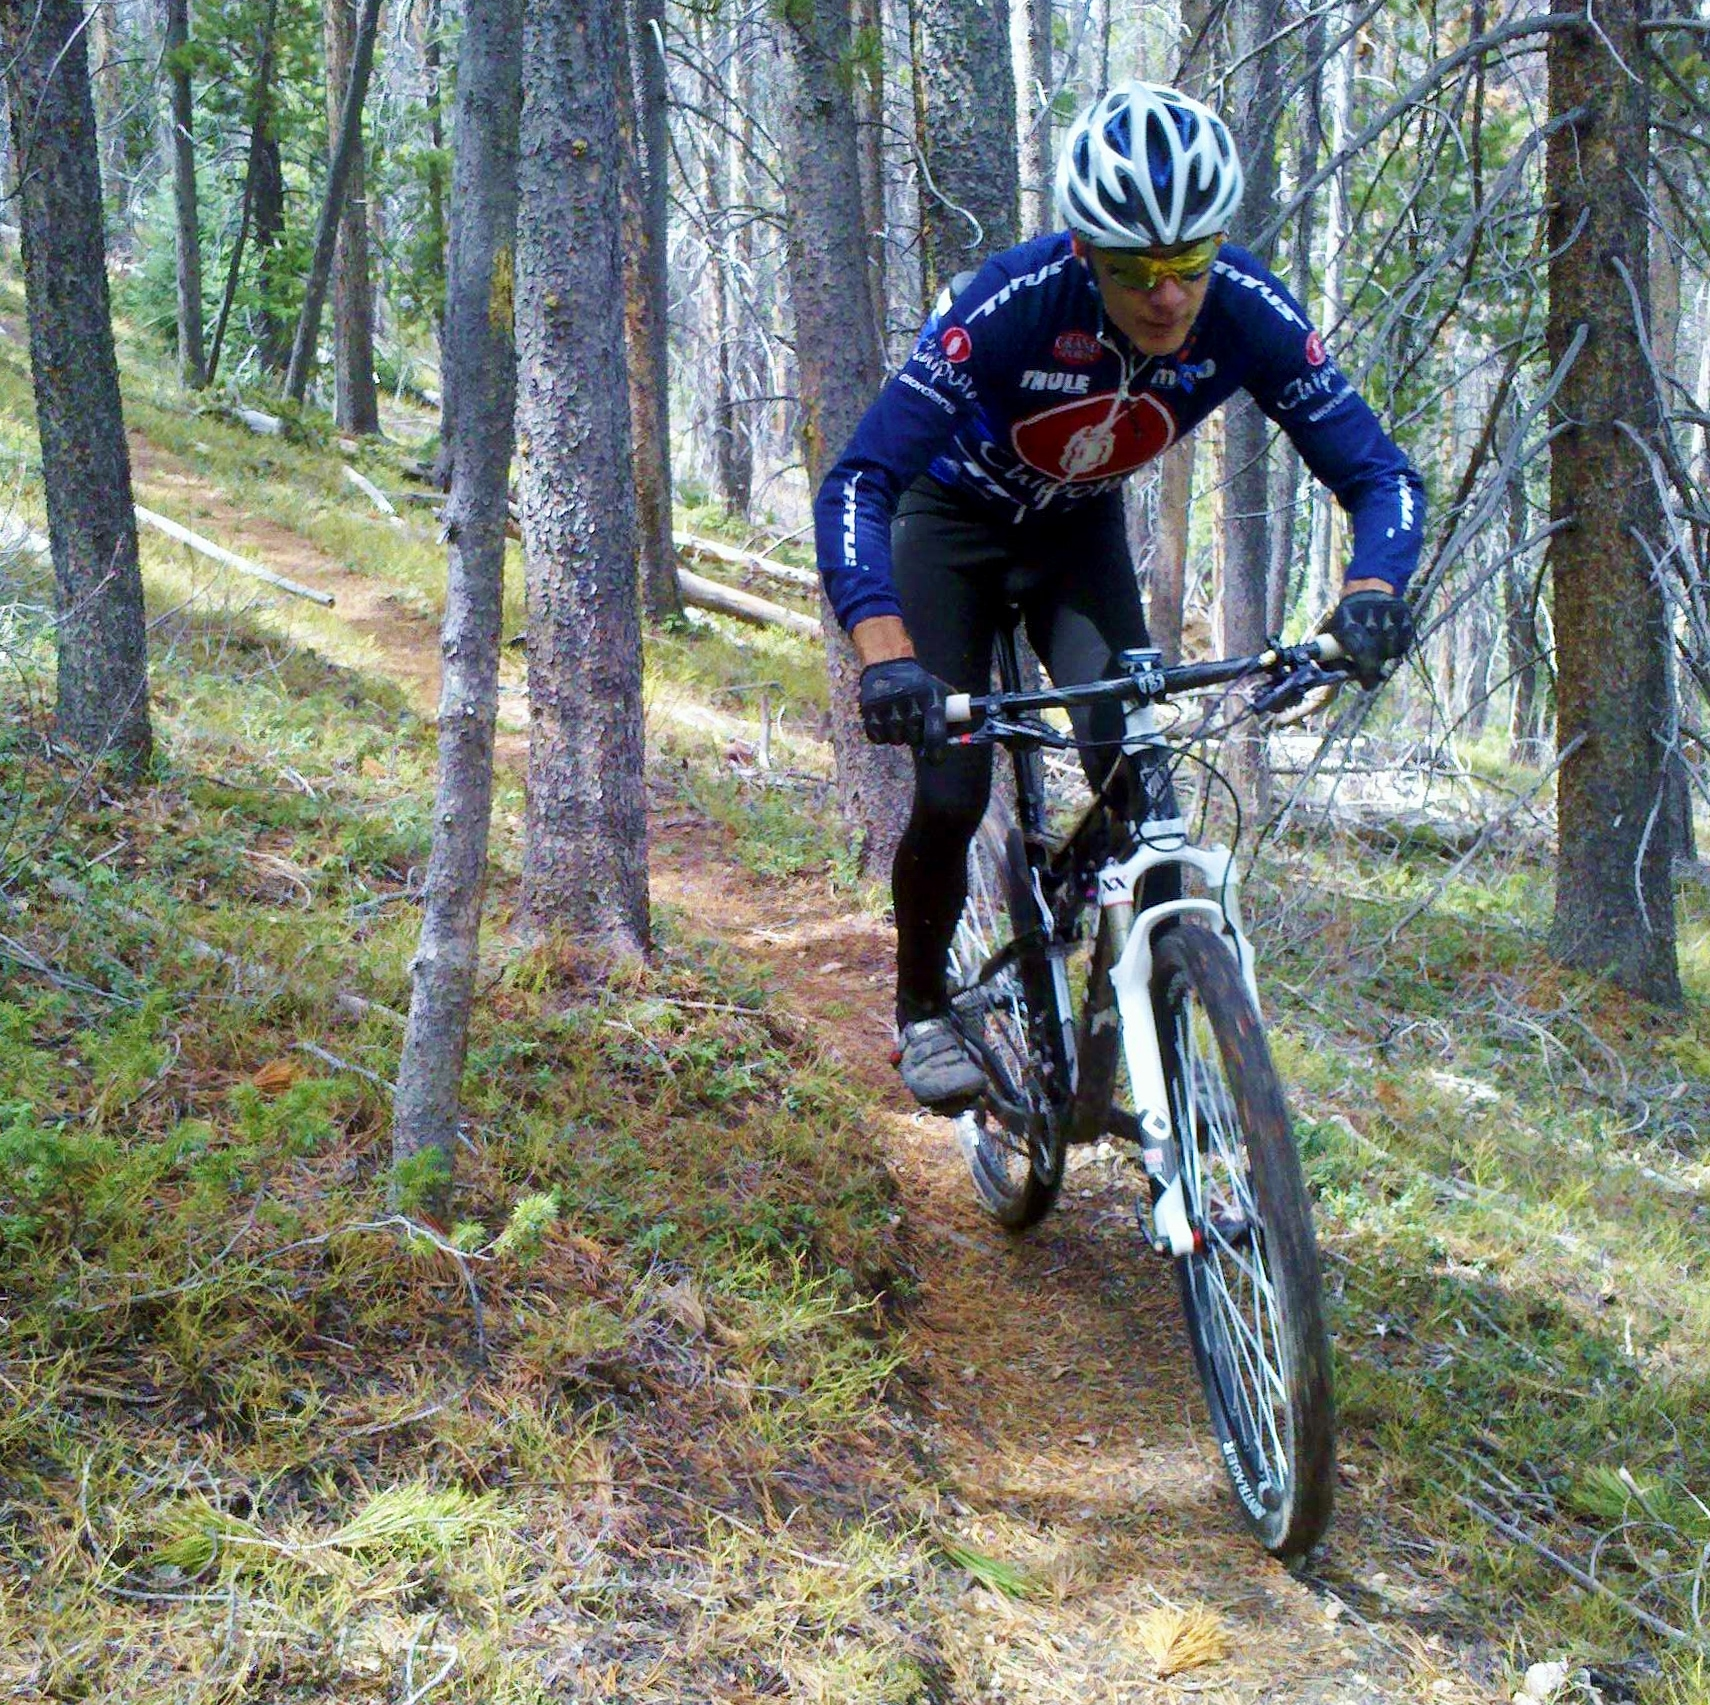 Man moutnain bikes down narrow trail through trees